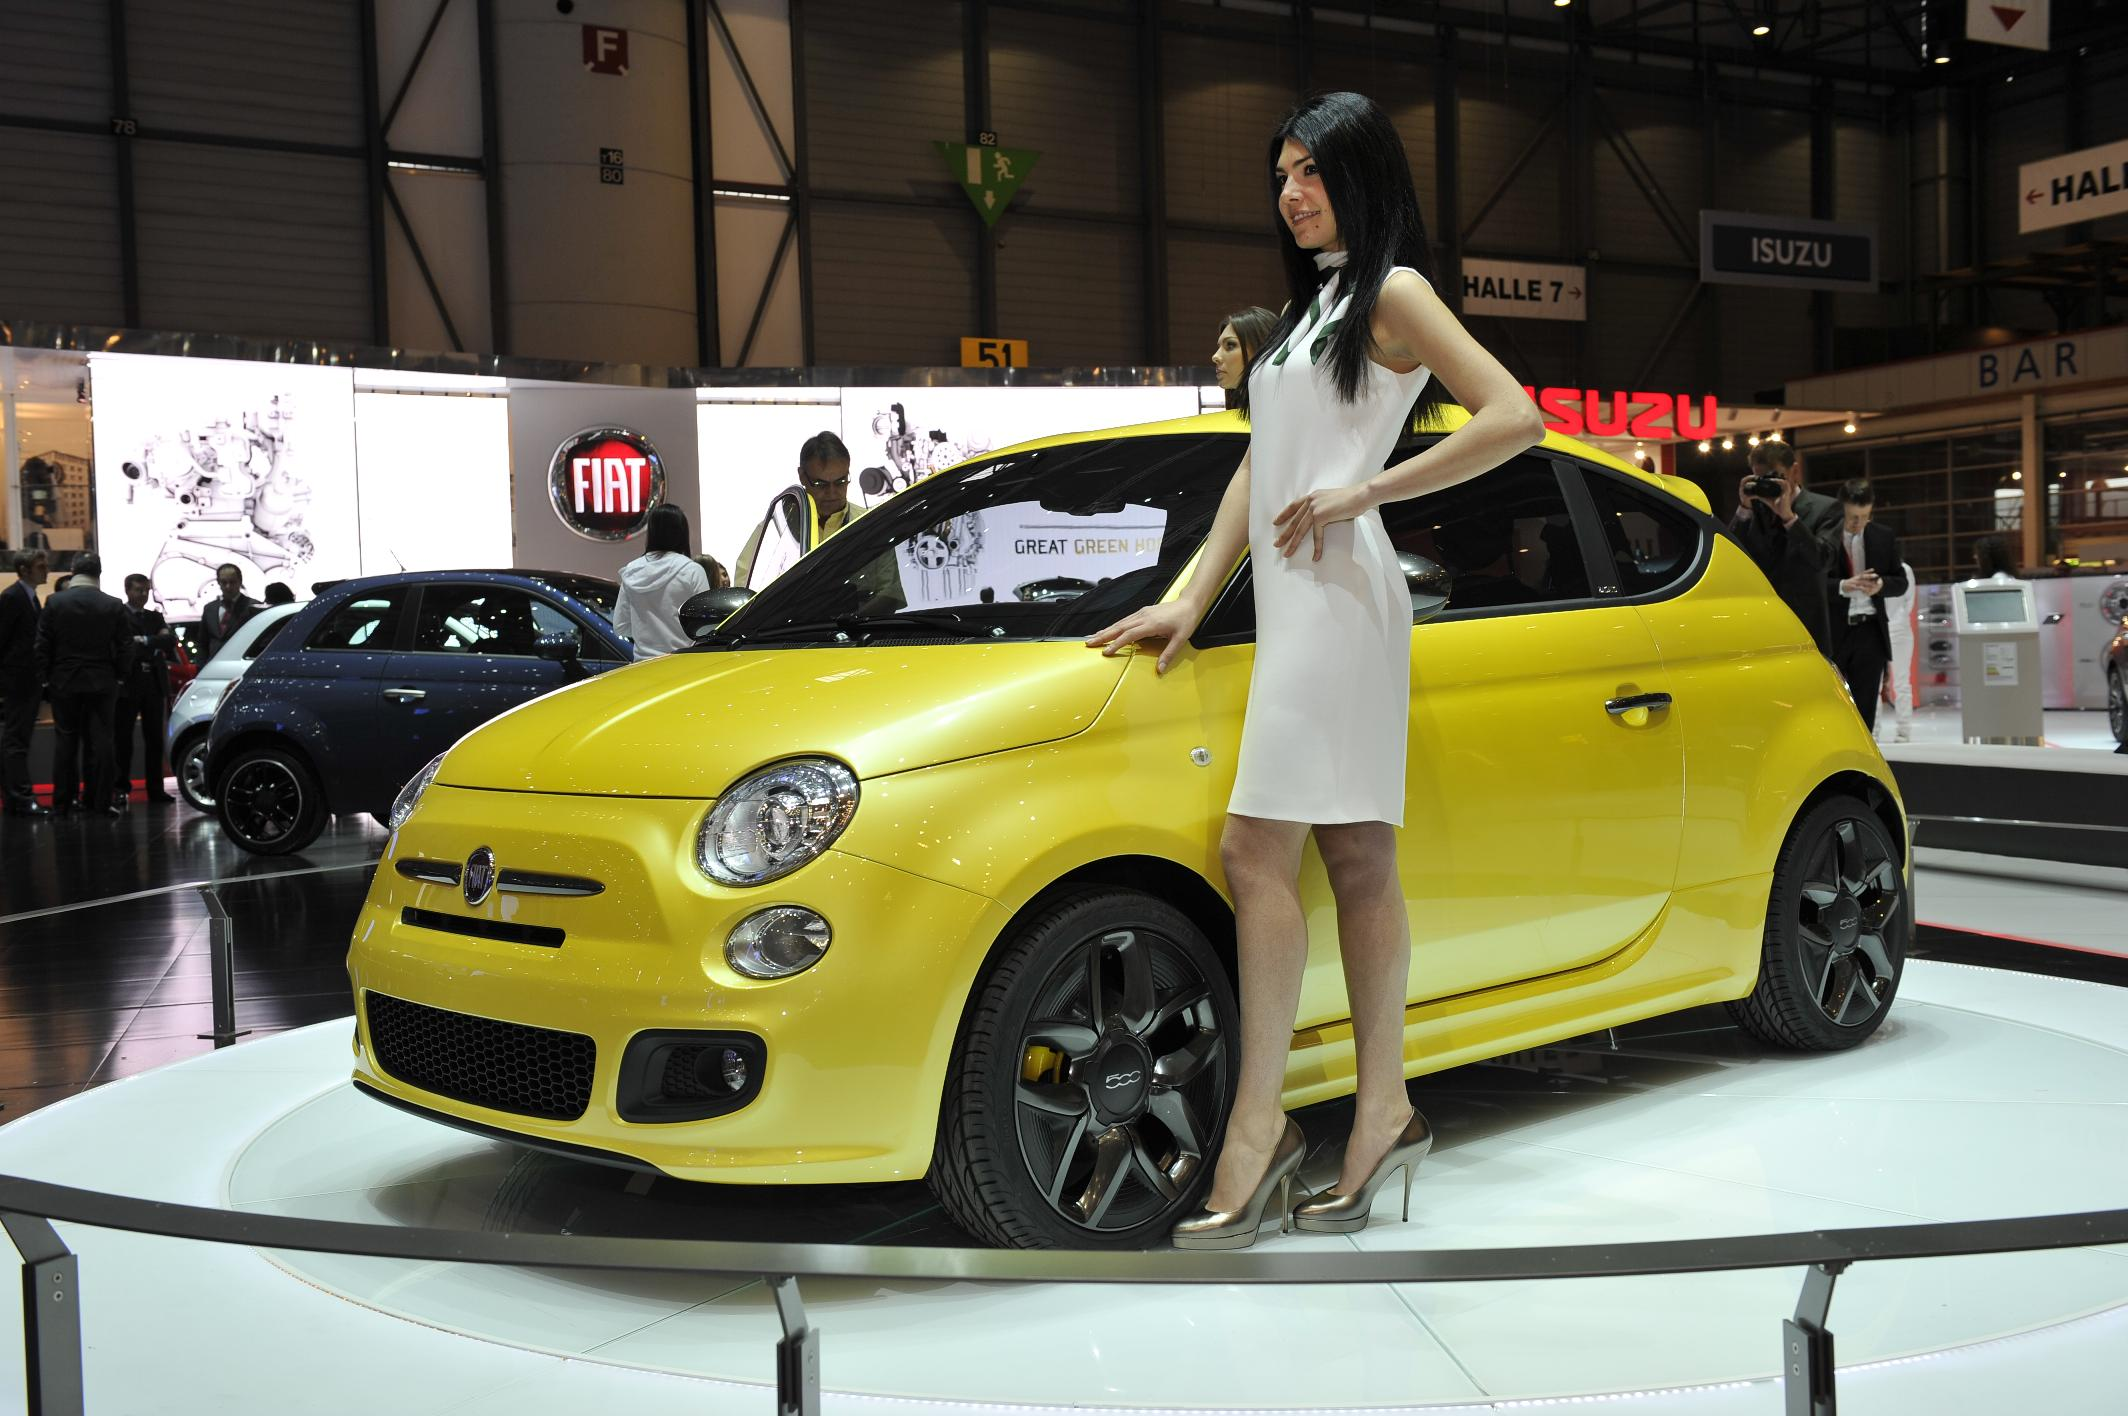 The cute Zagato Fiat 500 Coupe